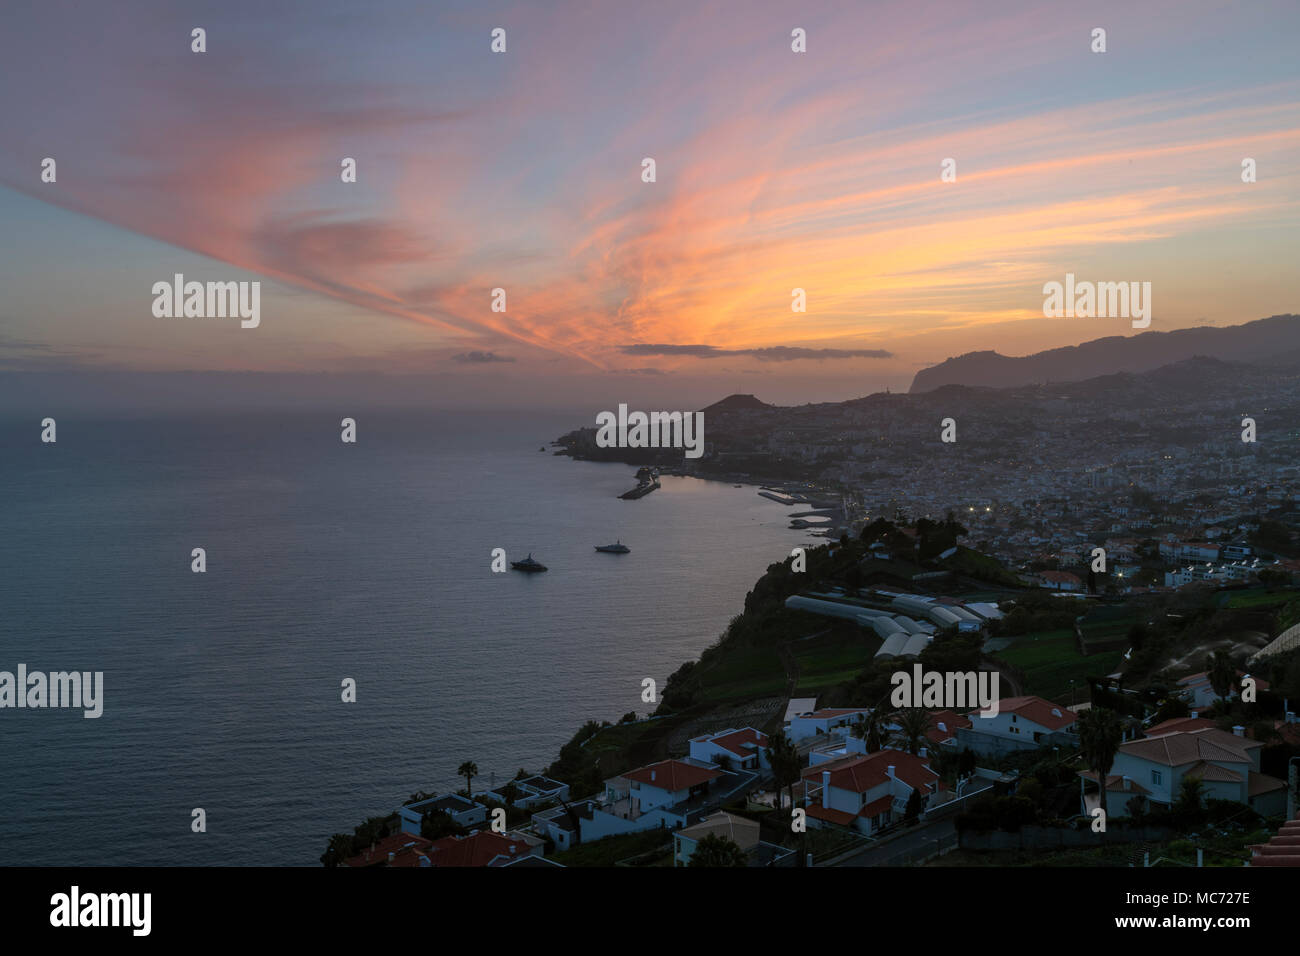 Funchal, Madeira, Portugal, Europe - Stock Image